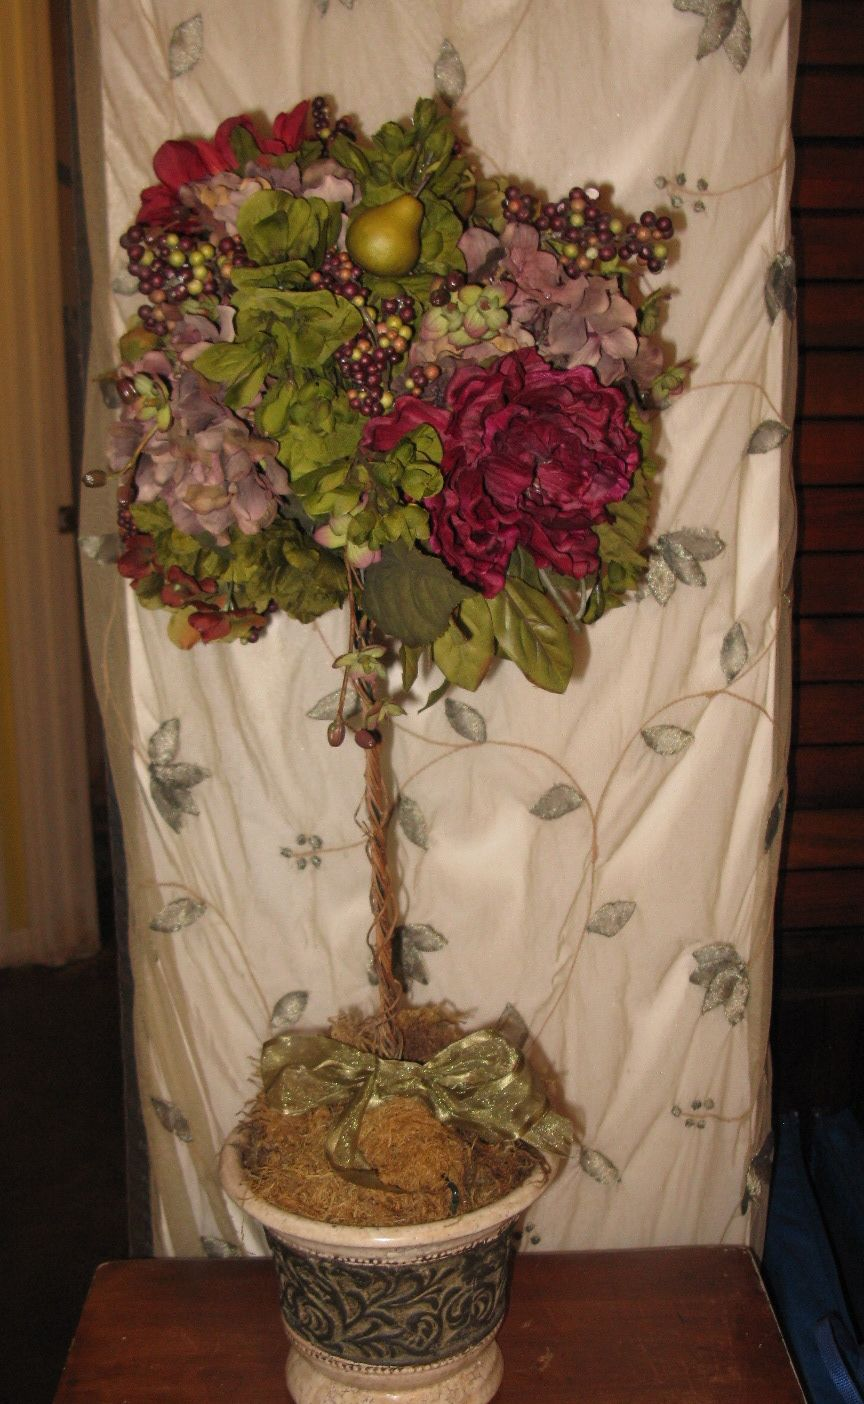 Downton Abbey Brunch A Floral Display That Reflects The Grandeur Of